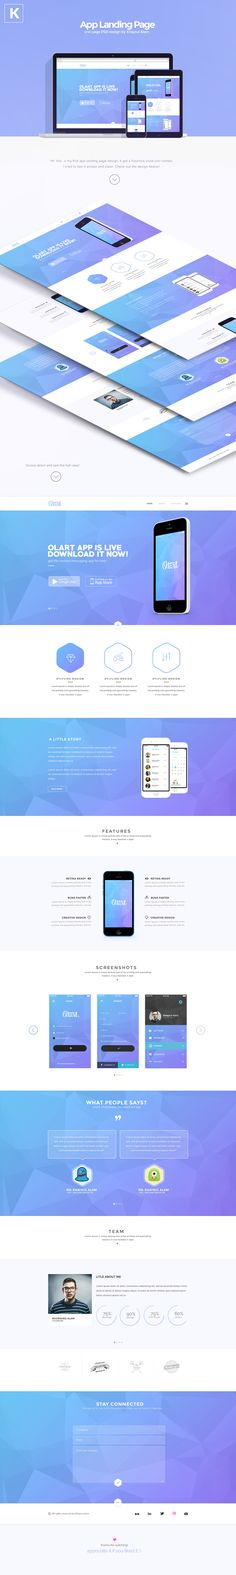 This is an one page app landing page, I designed this to keep it in my portfolio. :)